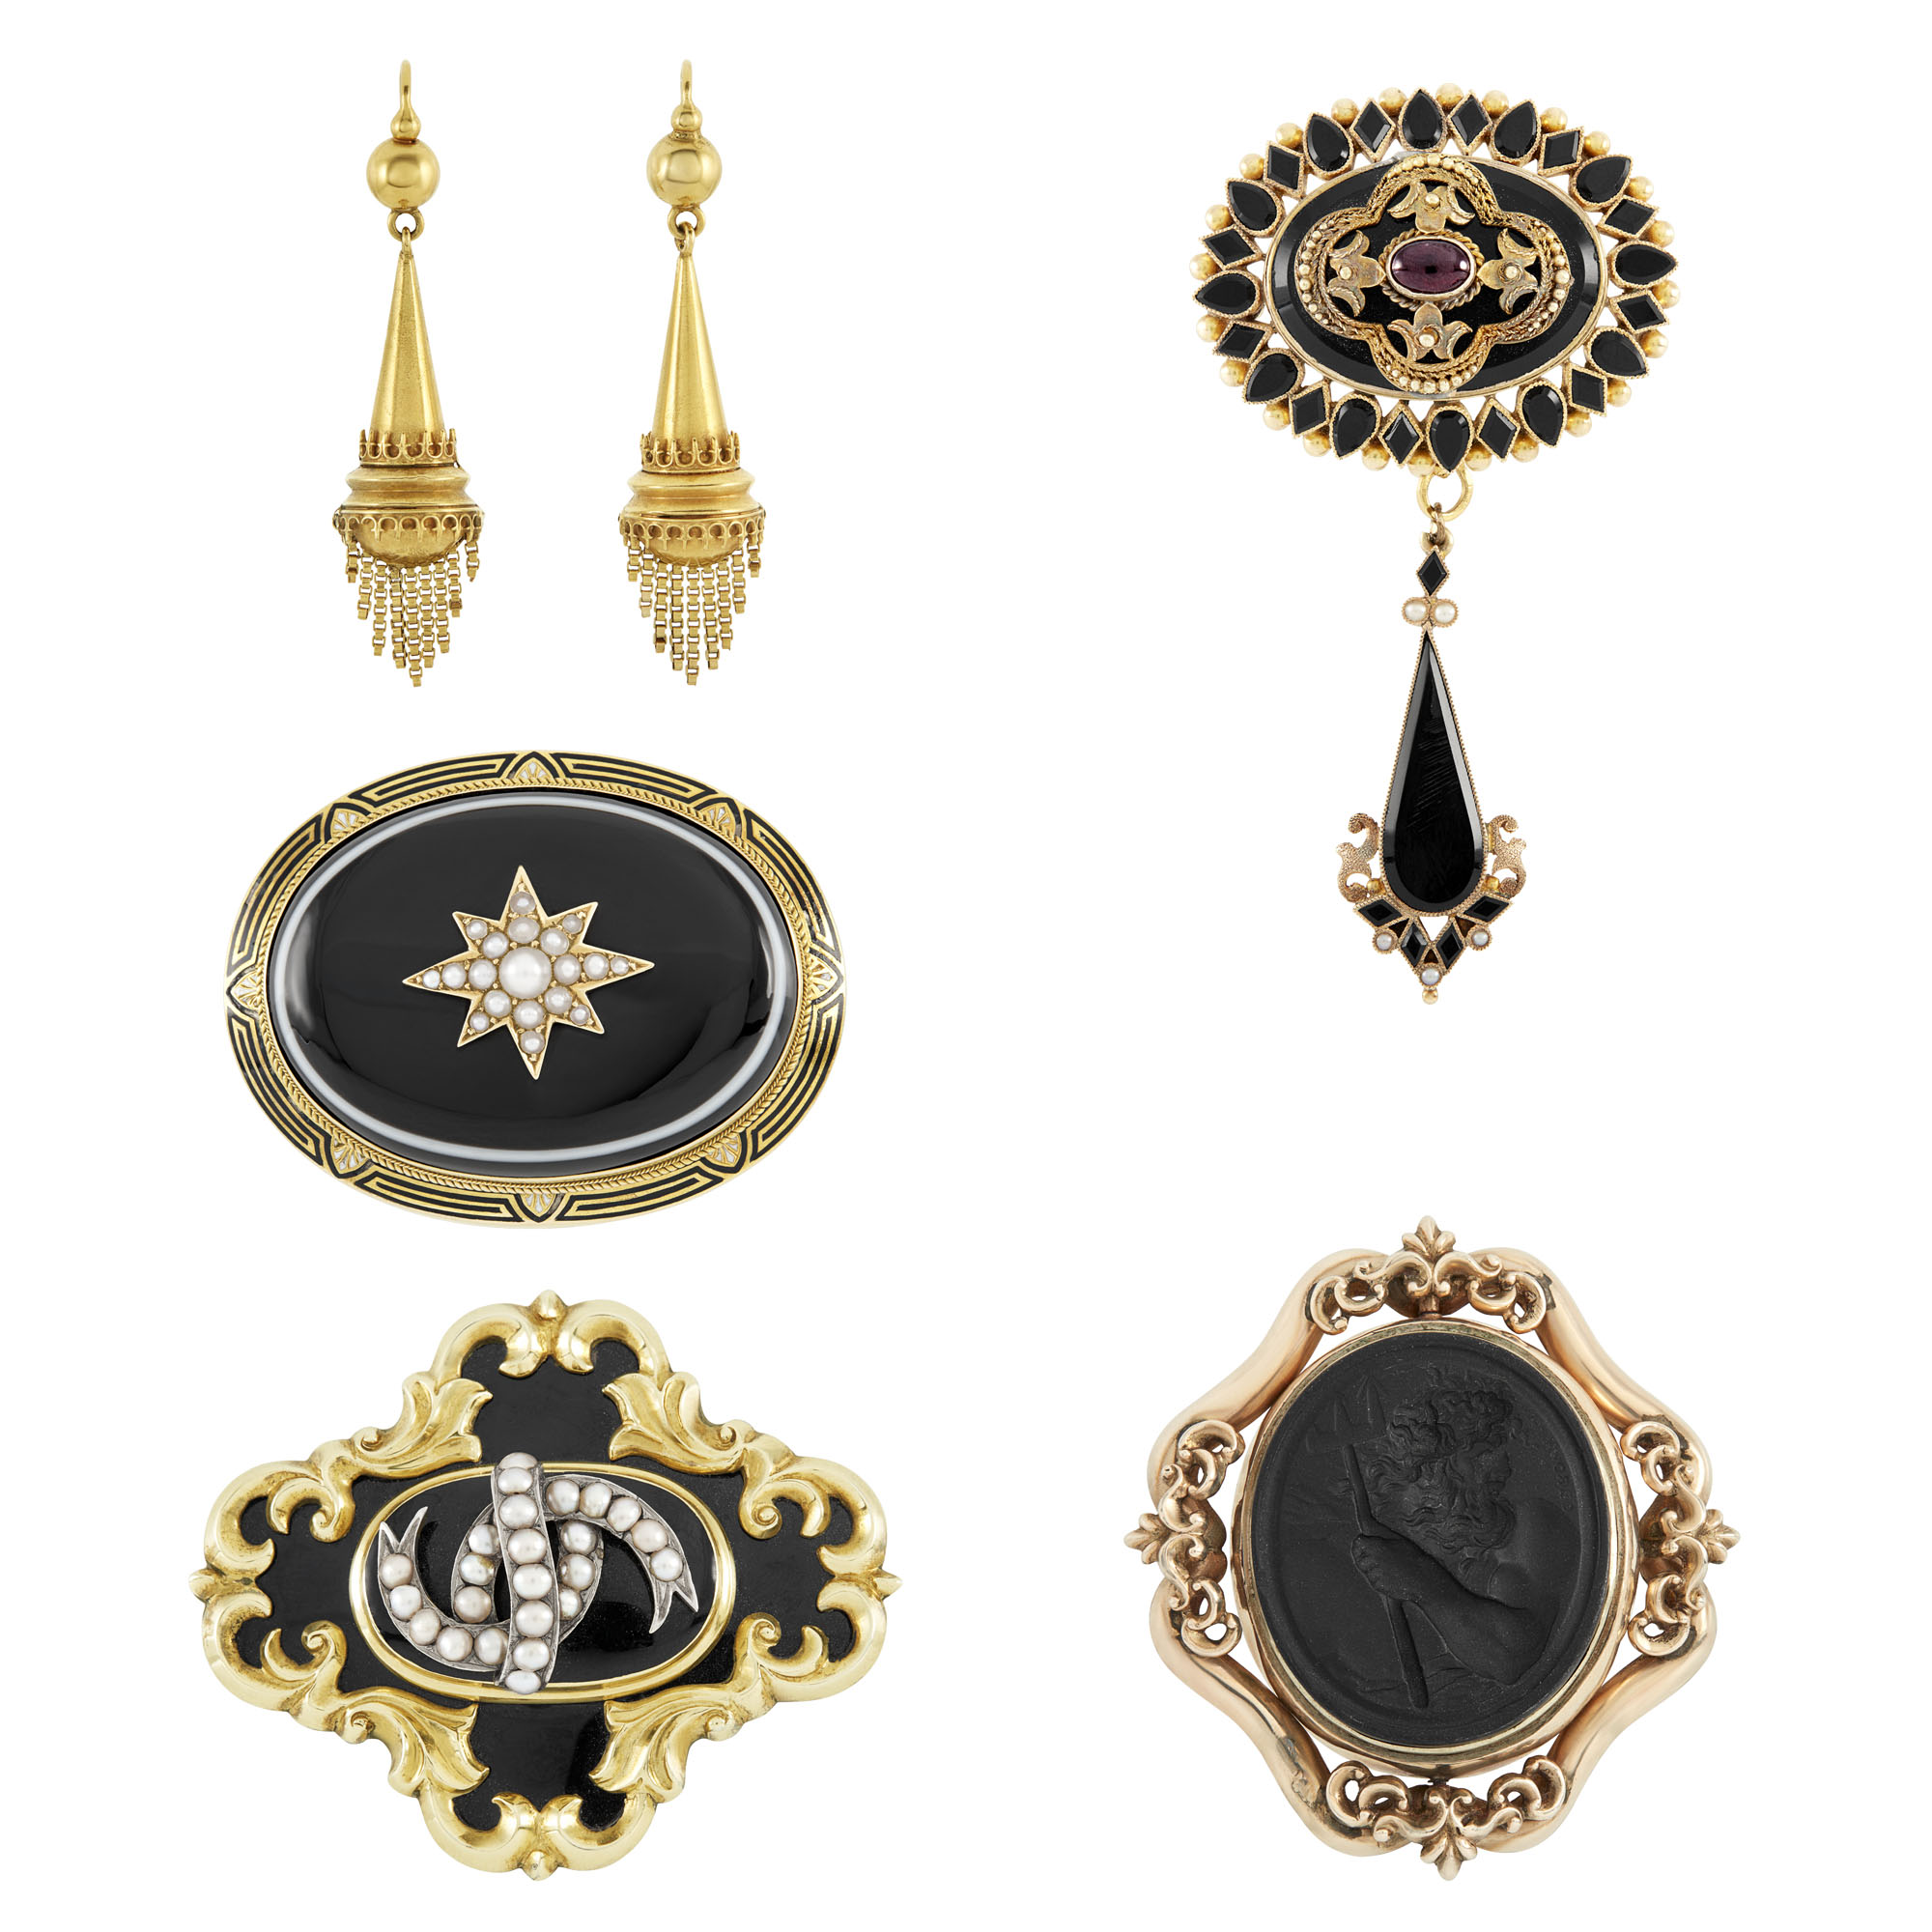 Lot image - Pair of Antique Gold and Gem-Set Earrings and Four Brooches